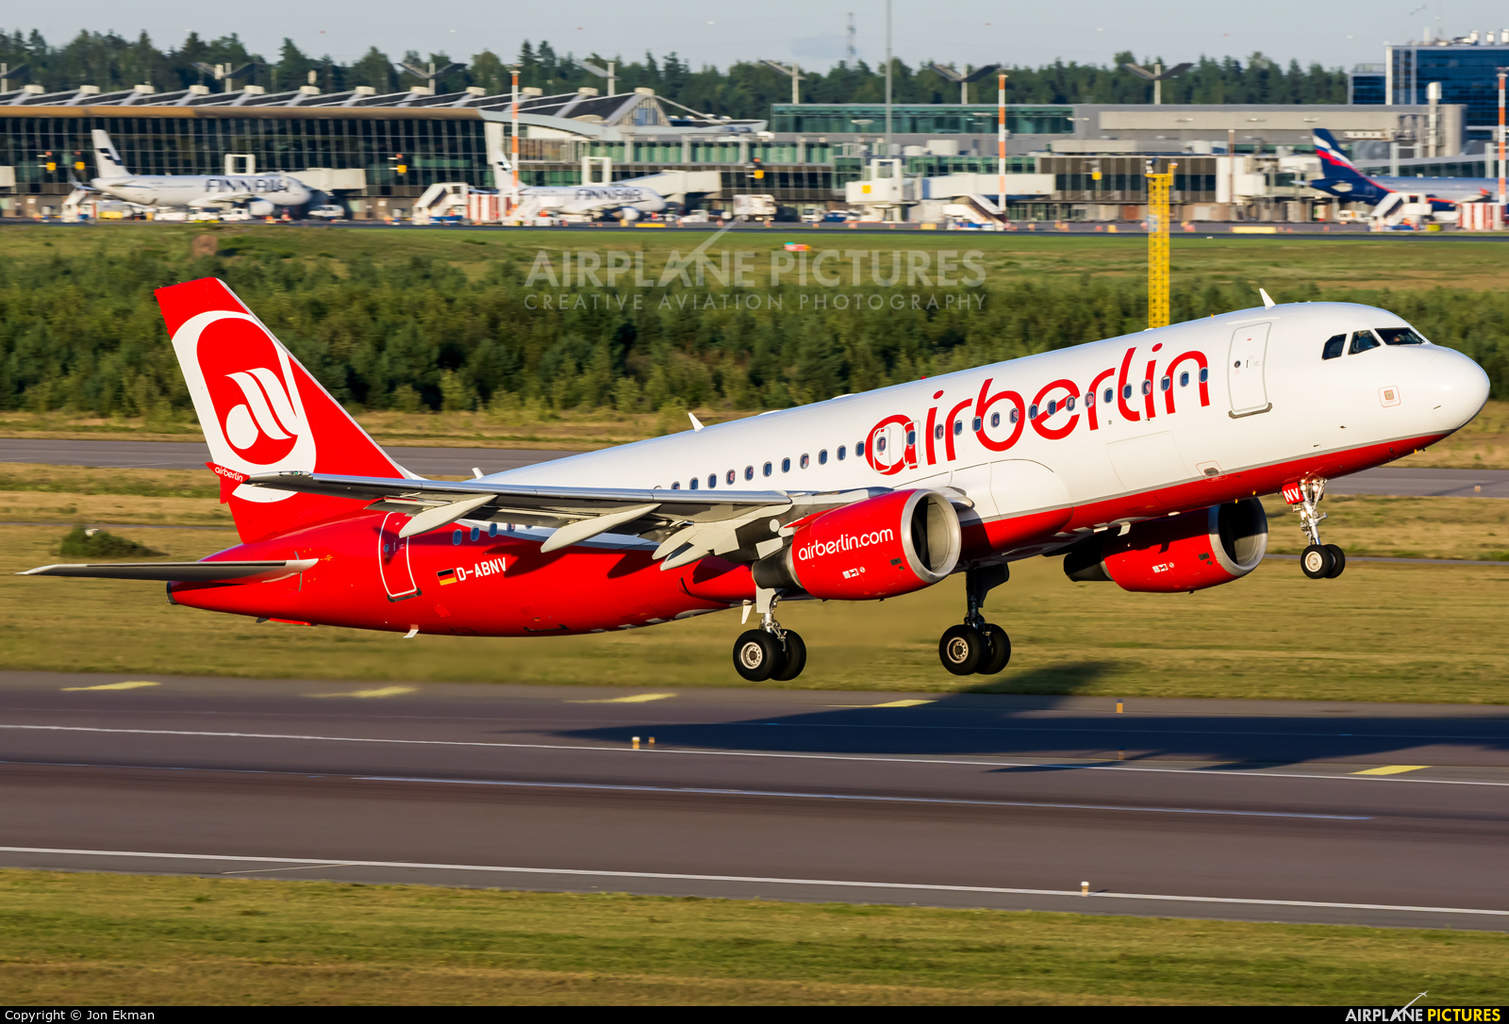 Lufthansa looking into wet-leasing from Air Berlin